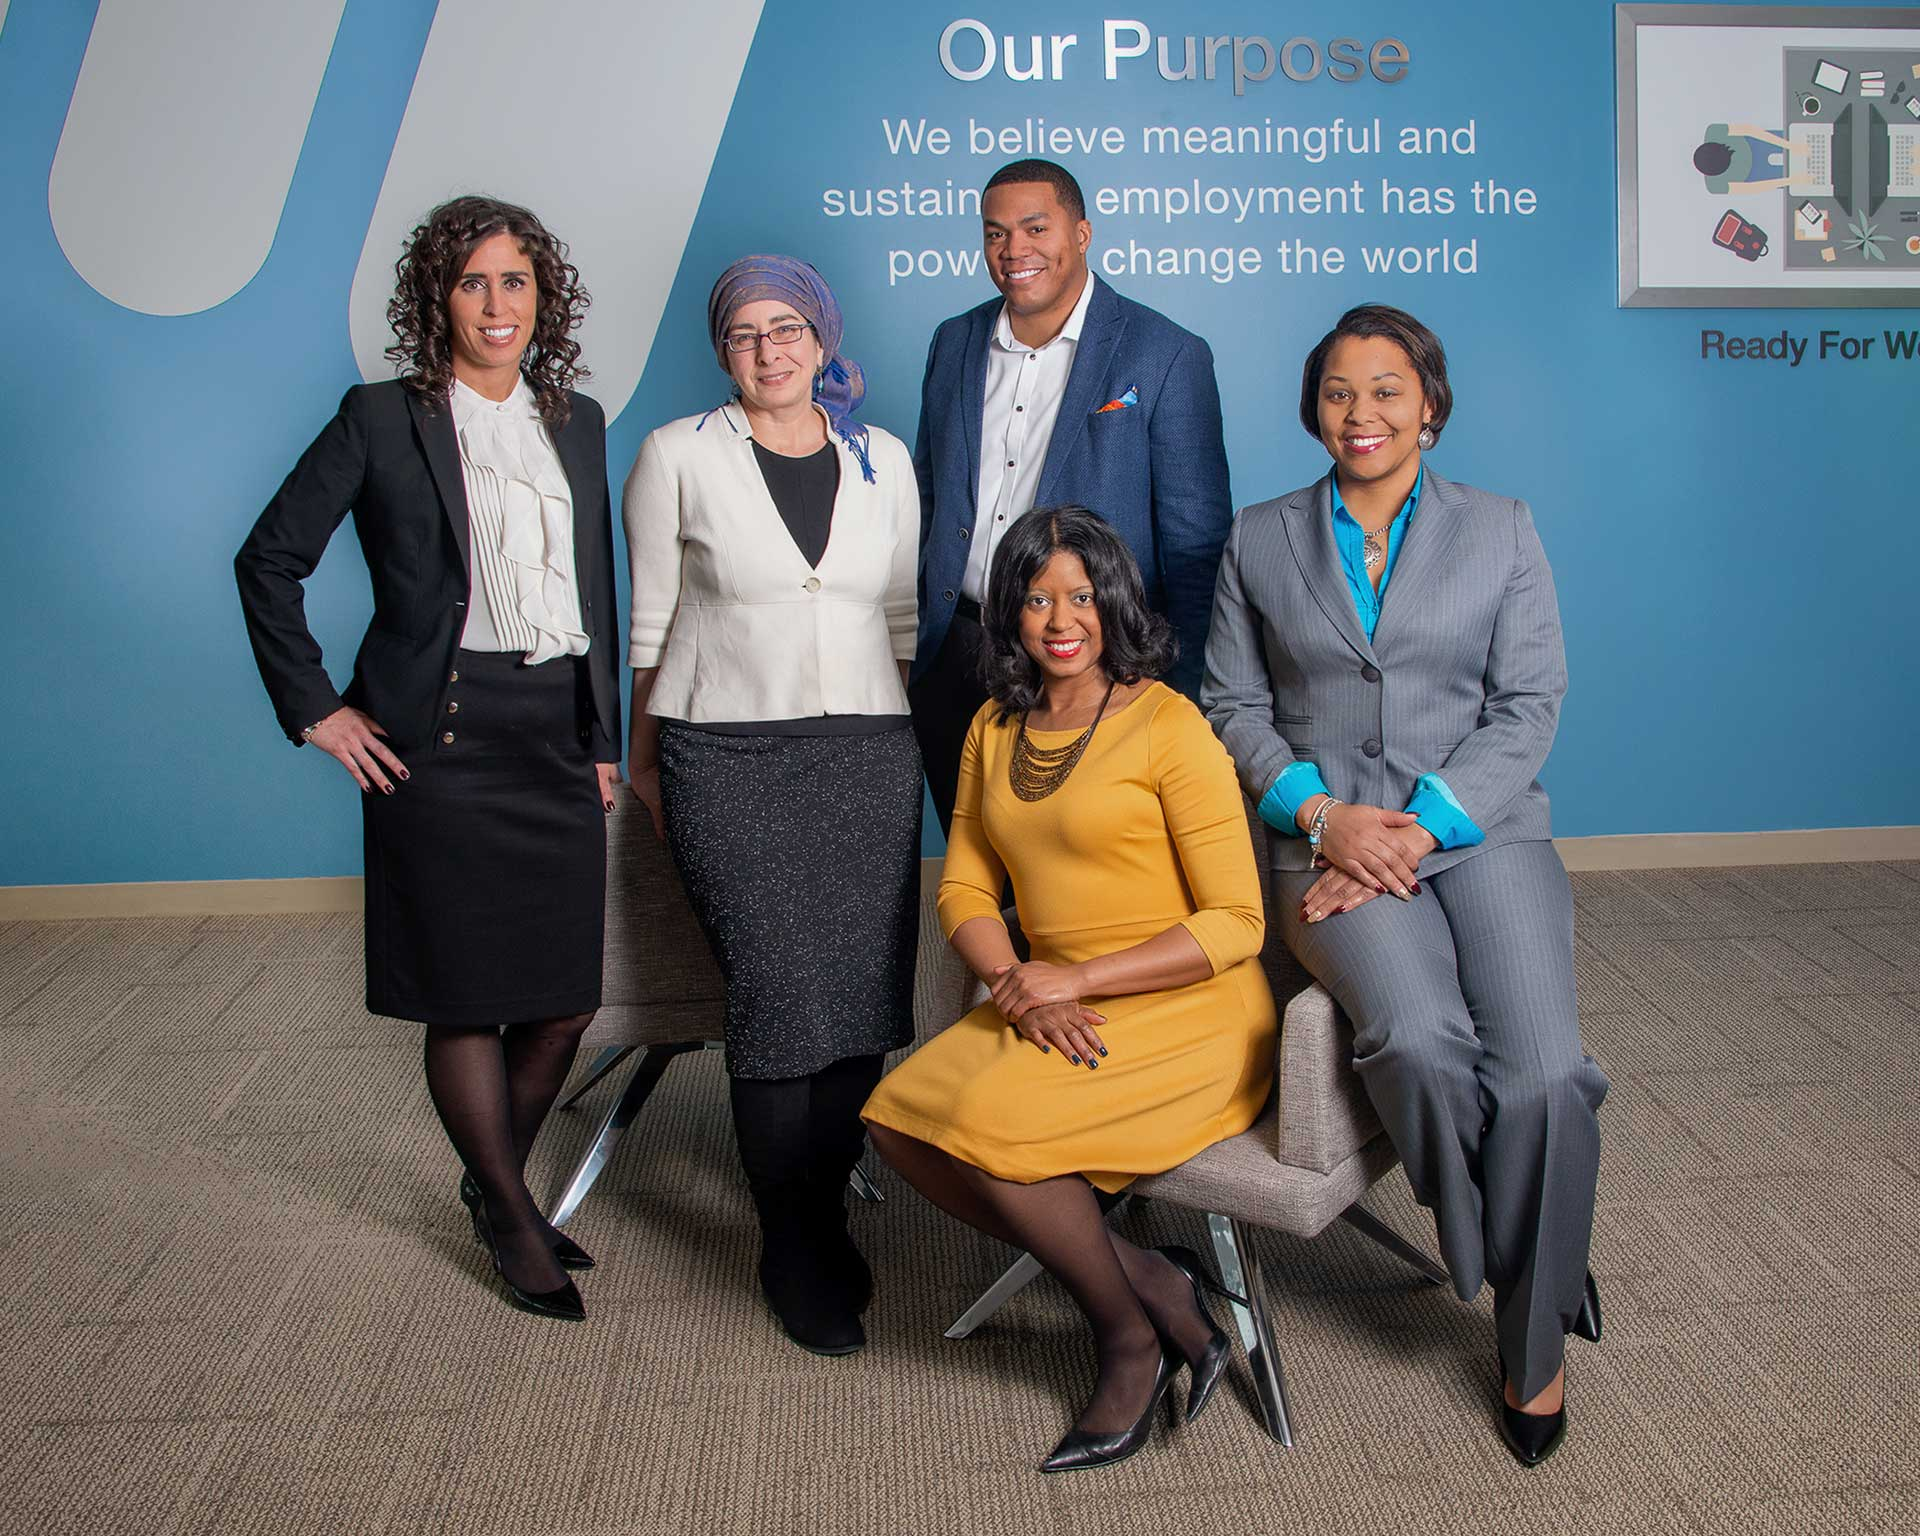 Image of a group of ManpowerGroup employees sitting in front of ManpowerGroup's Purpose wall